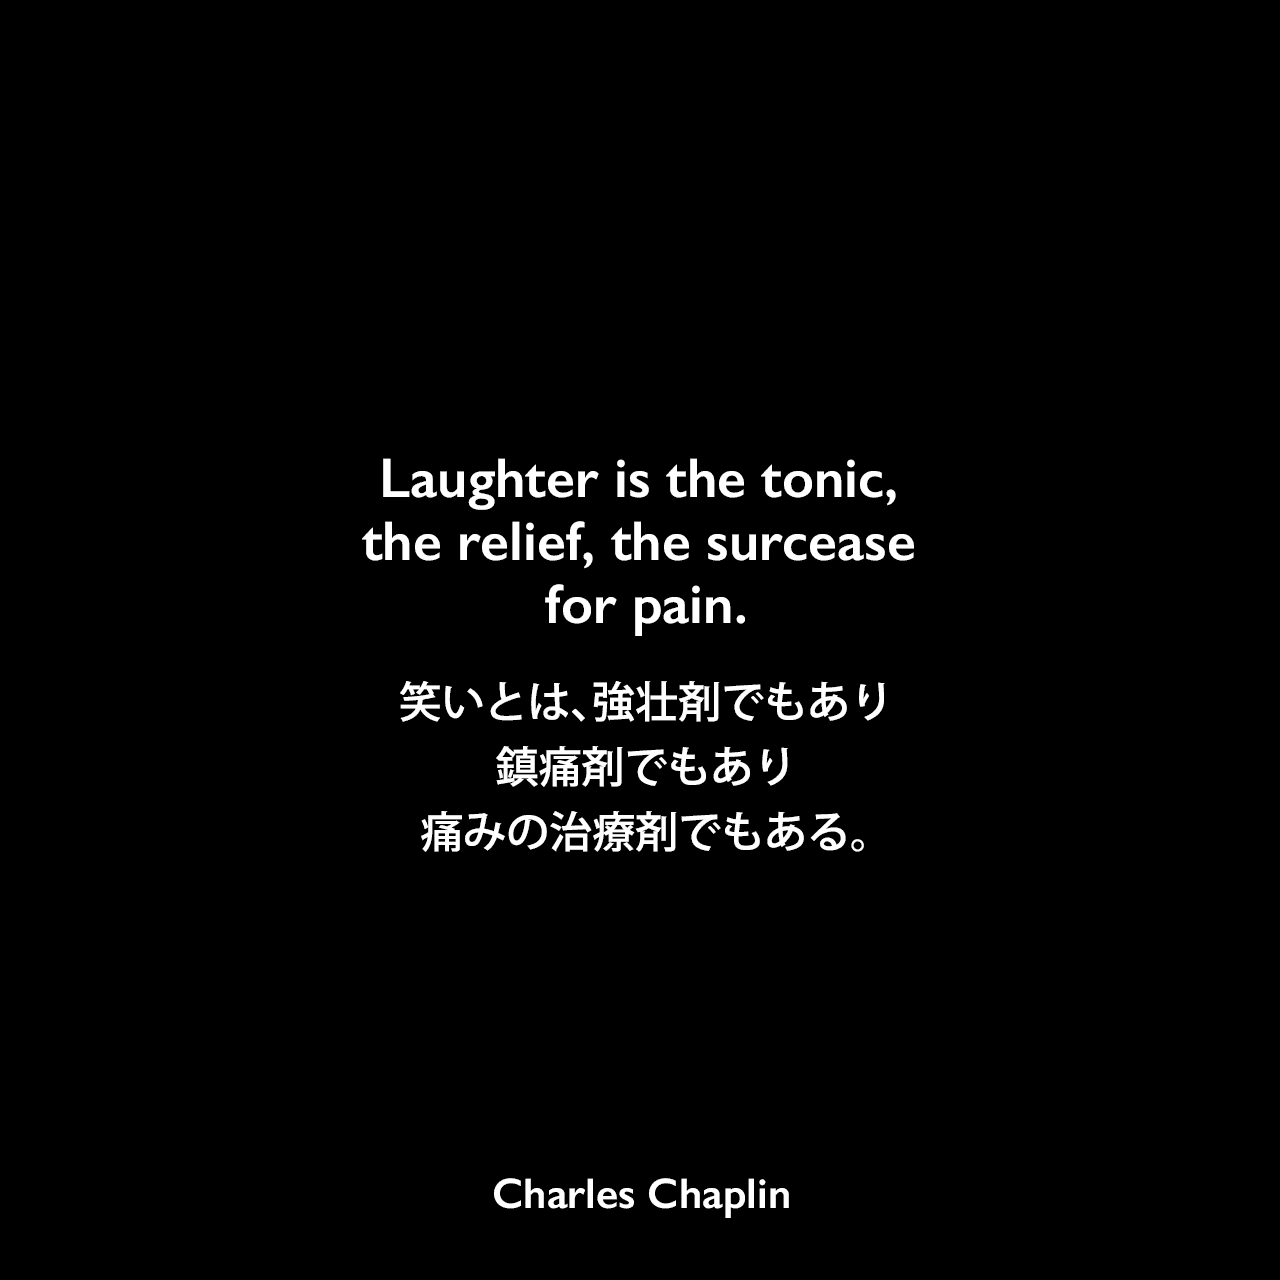 Laughter is the tonic, the relief, the surcease for pain.笑いとは、強壮剤でもり、鎮痛剤でもあり、痛みの治療剤でもある。Charles Chaplin